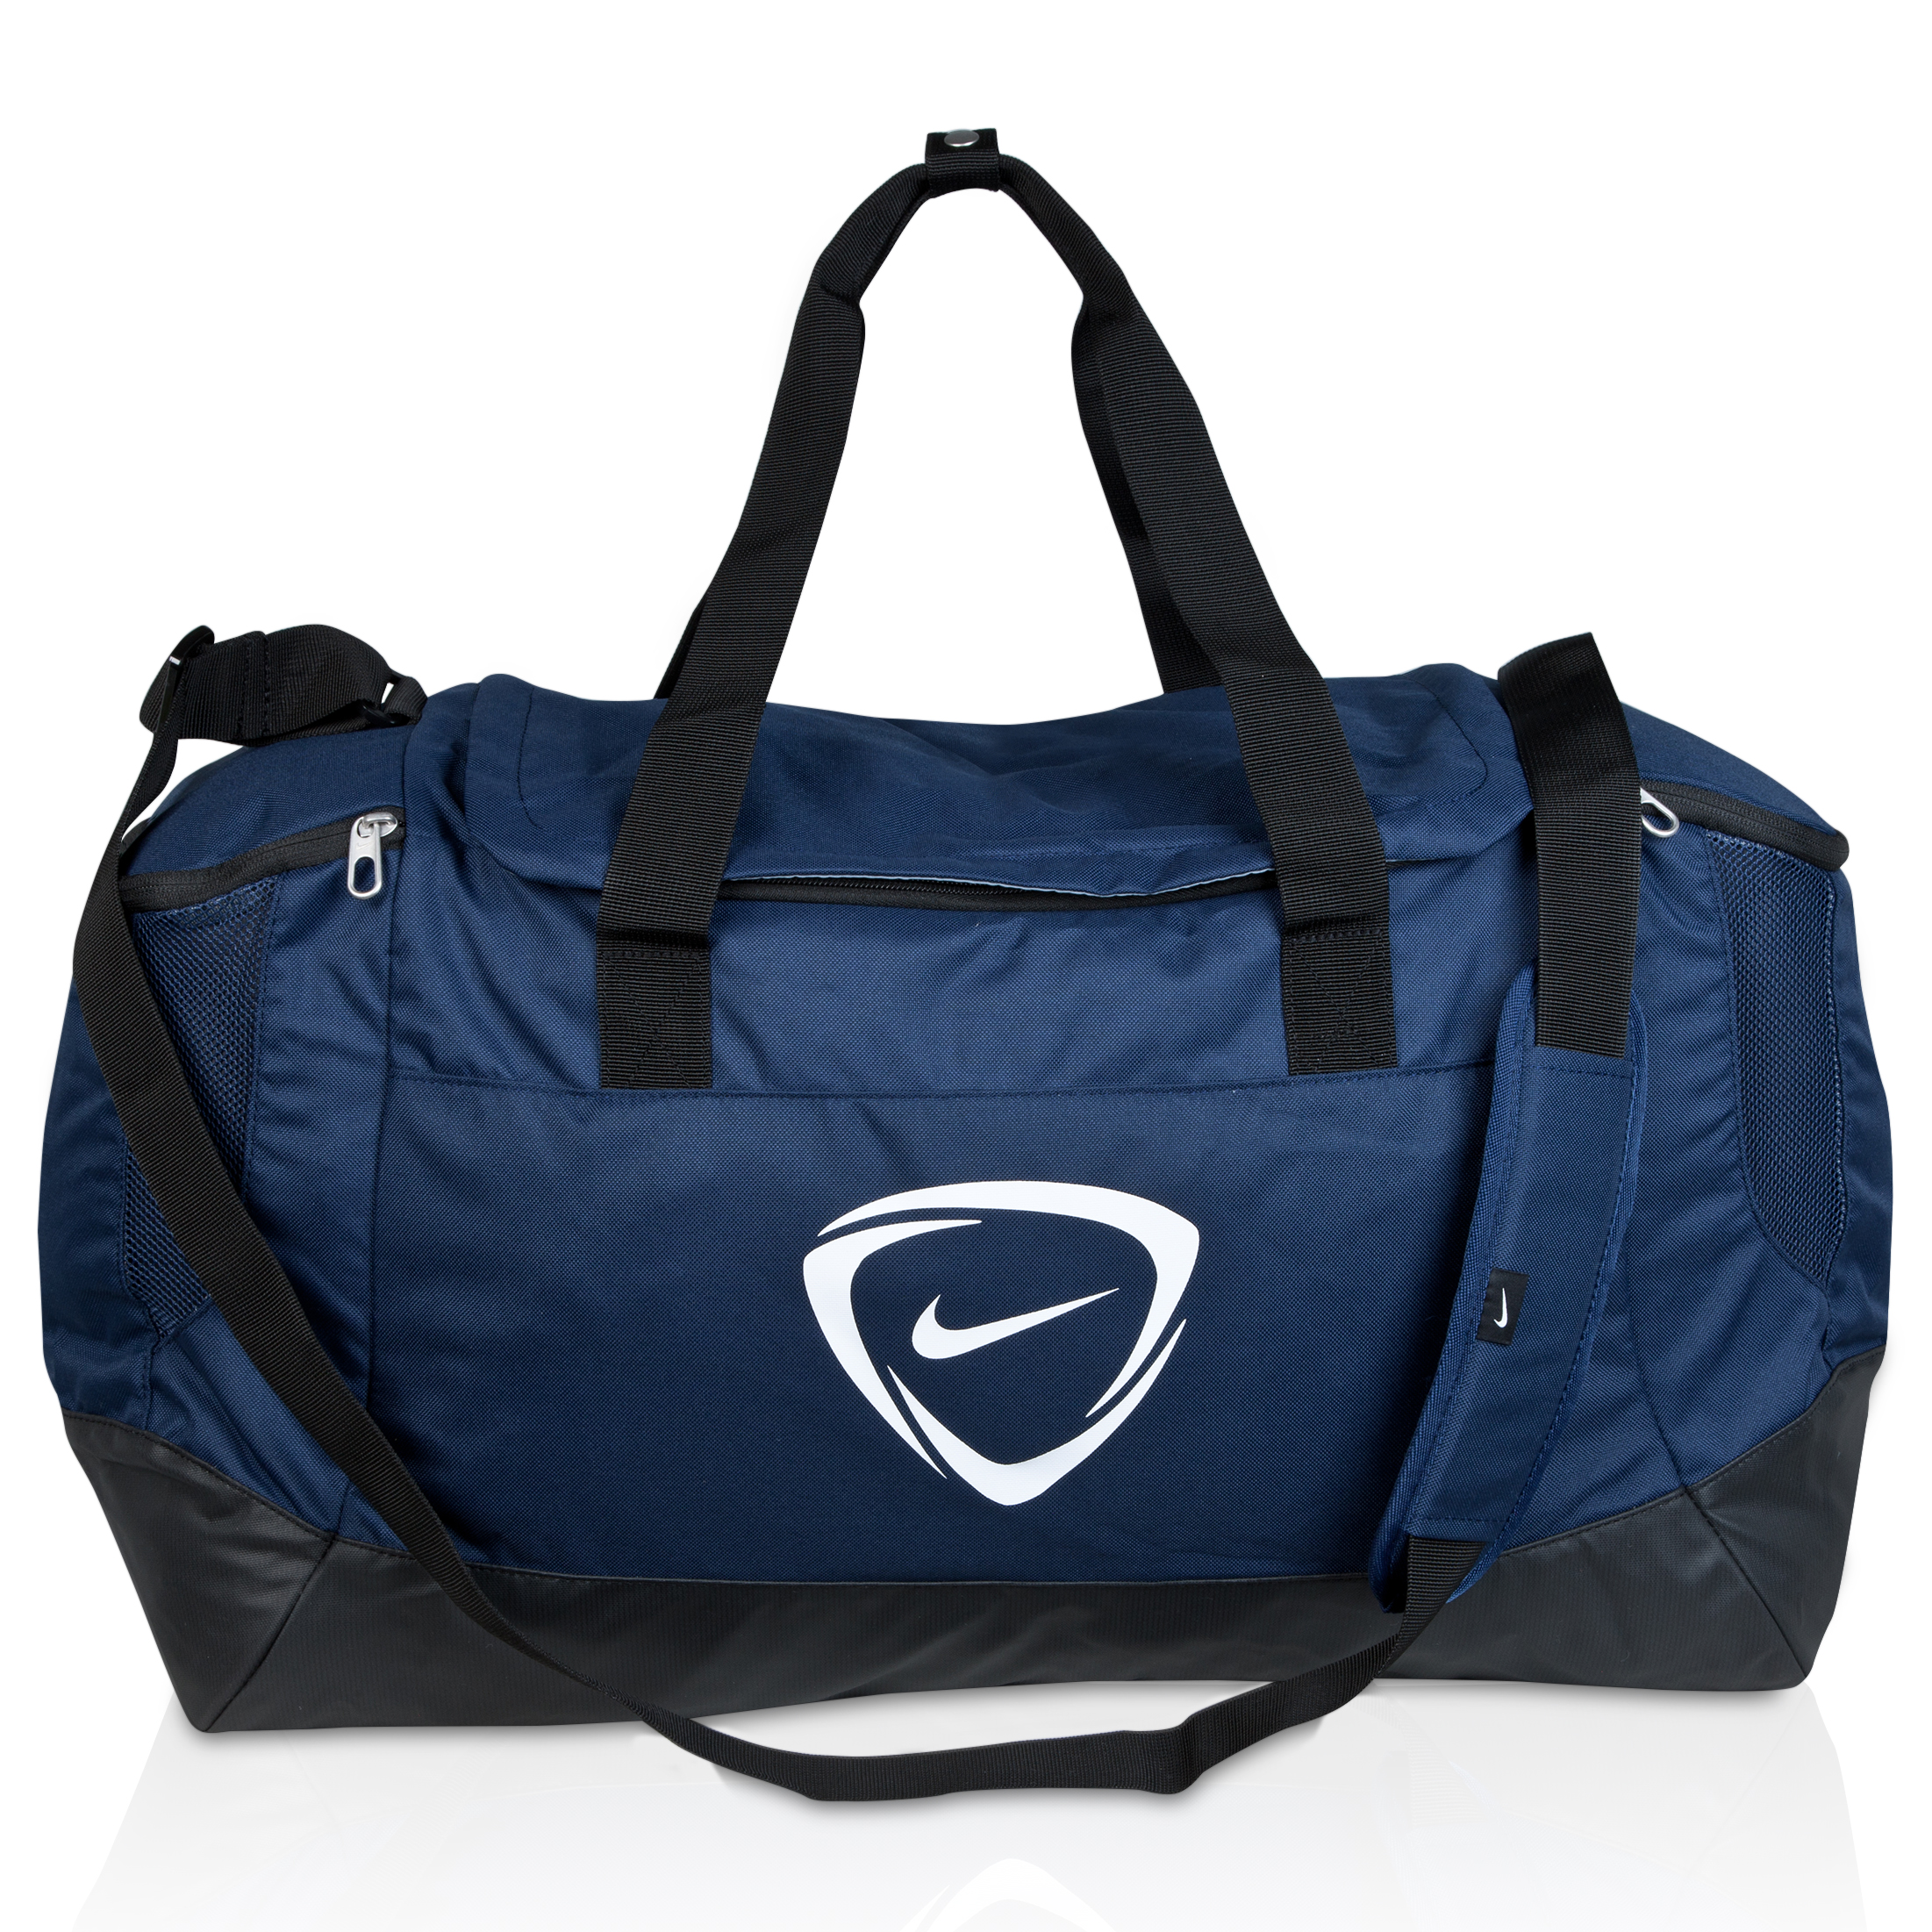 Nike Club Team Large Duffel Bag Navy